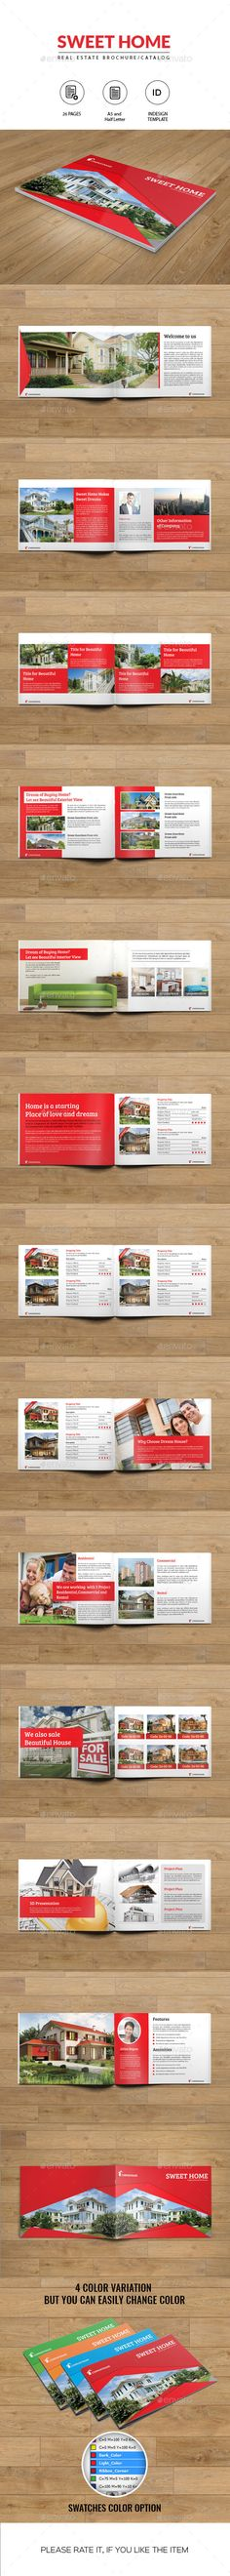 Real Estate Brochure-A5 and Half Letter Size - Catalogs Brochures